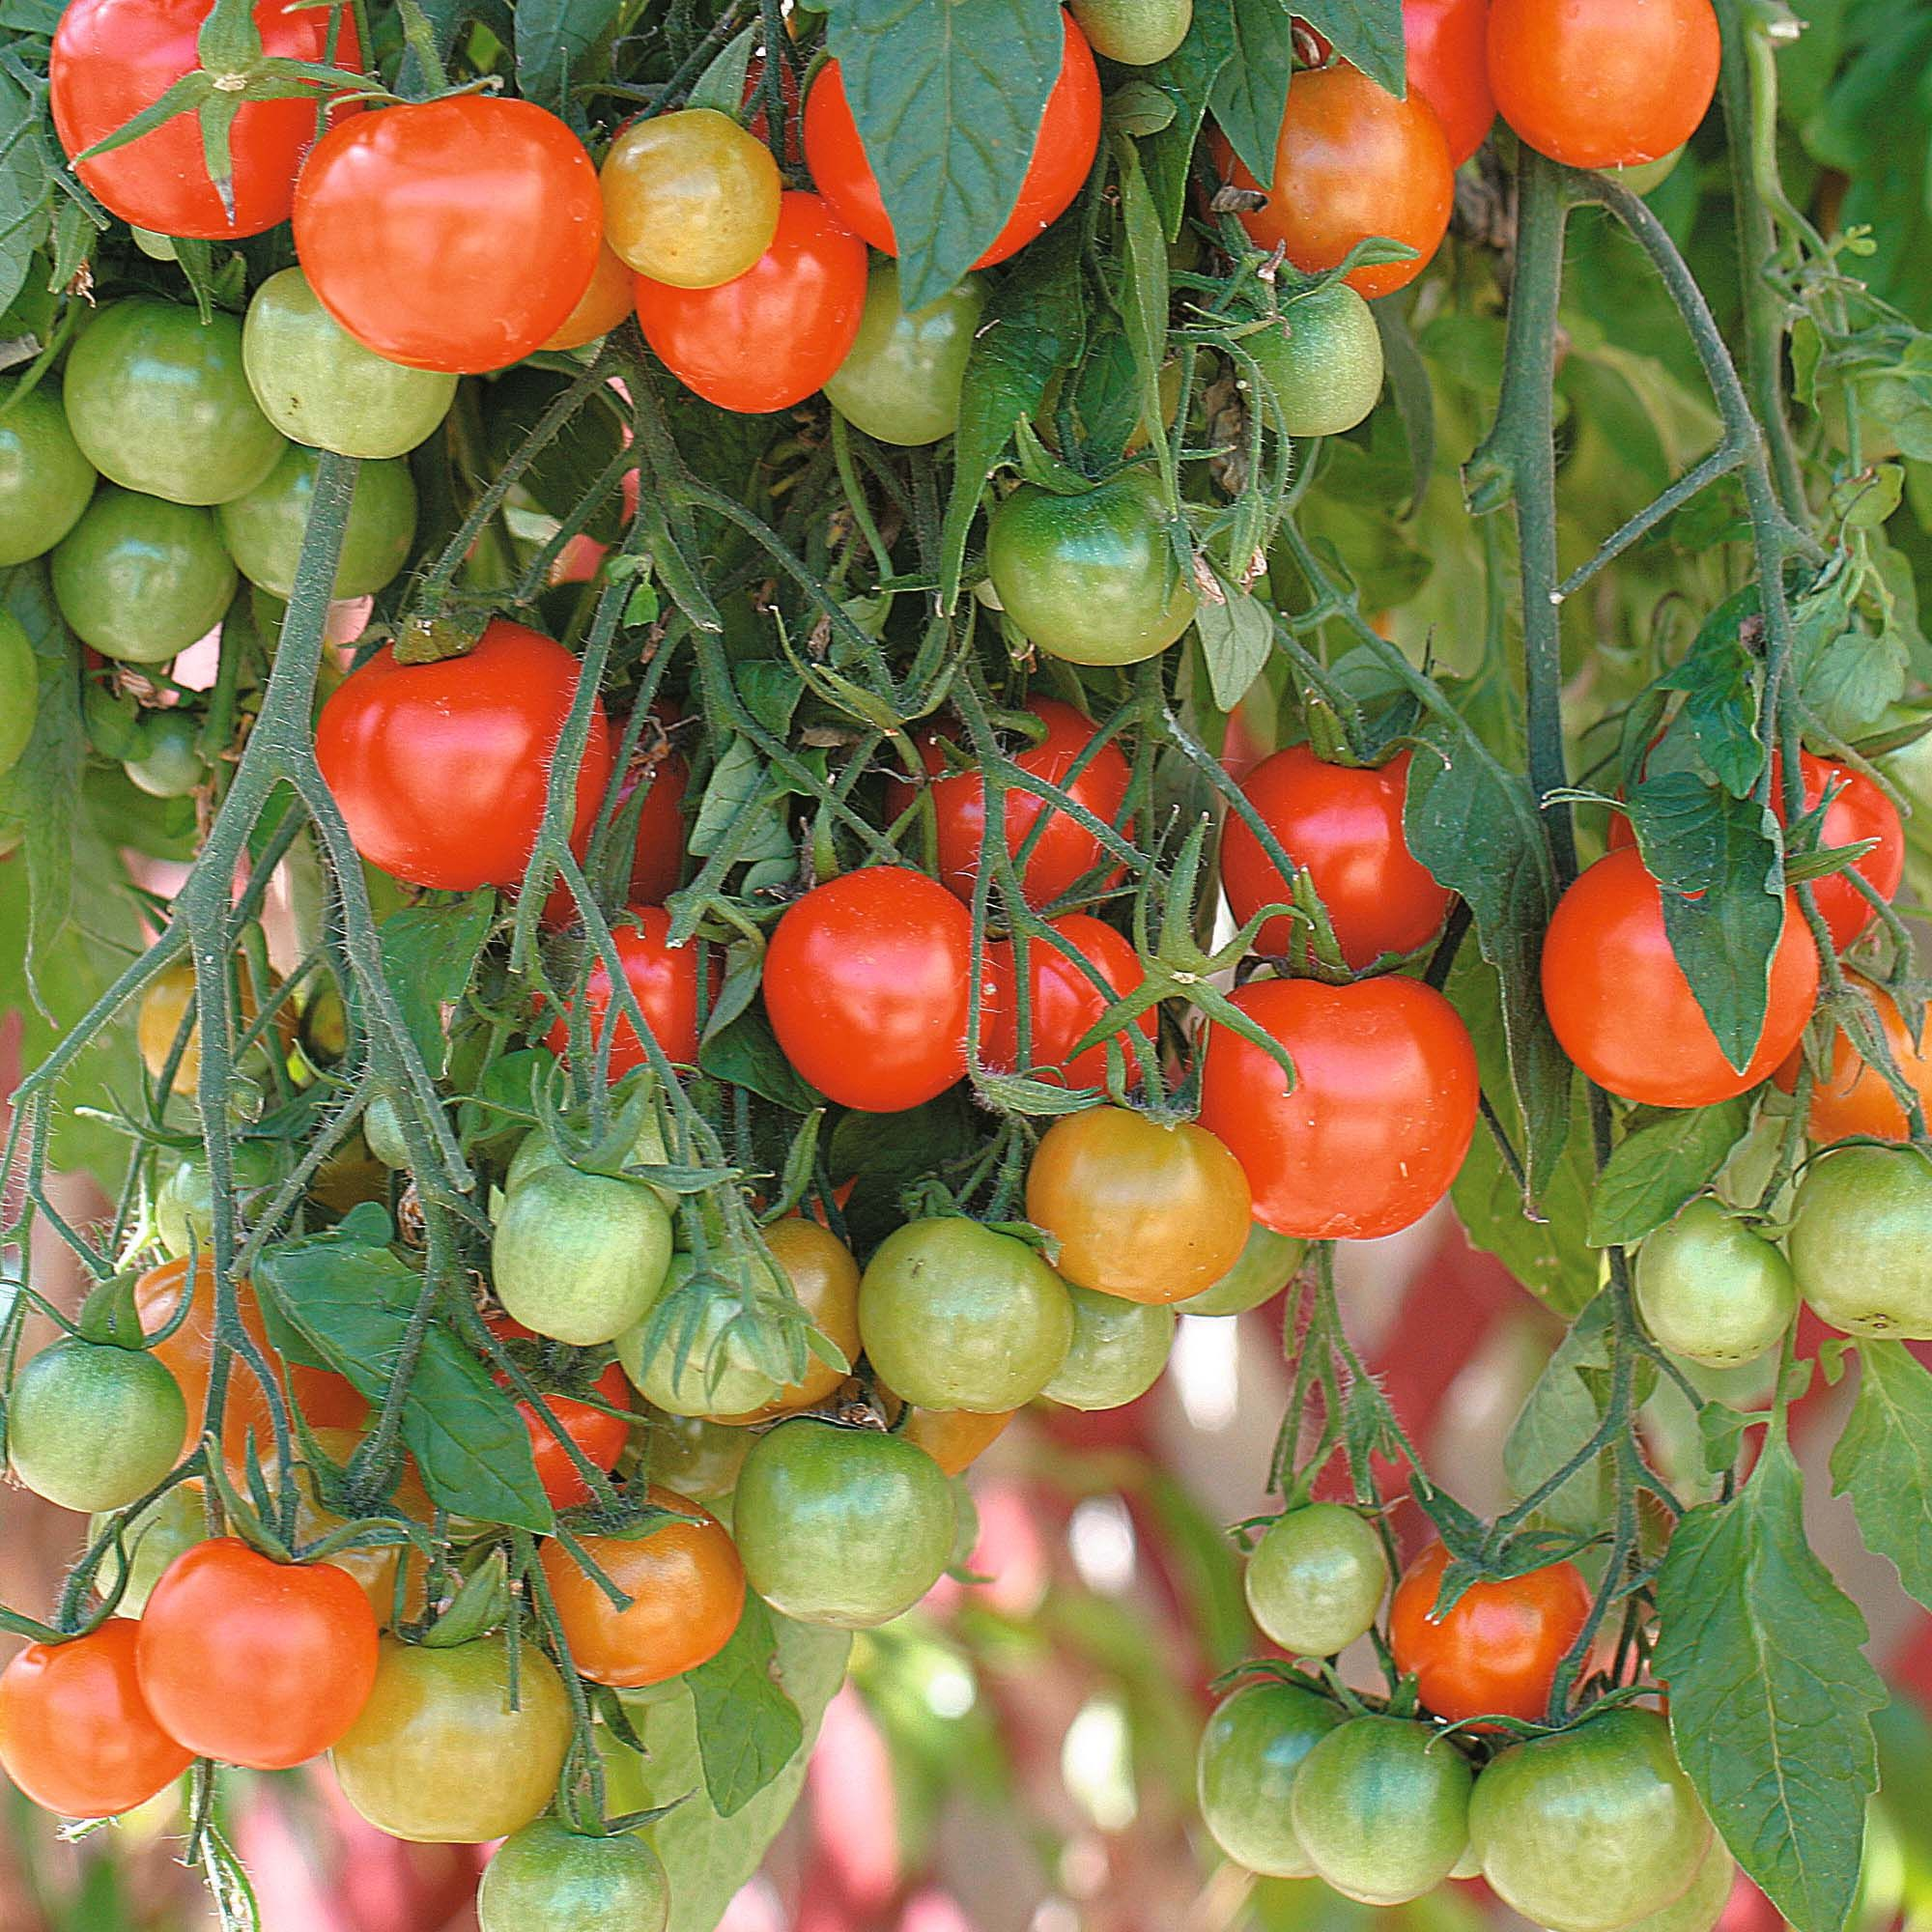 Hanging Basket Tomatoes Tomato Growing In Containers Tomato Seeds Growing Tomatoes In Containers Planting Vegetables